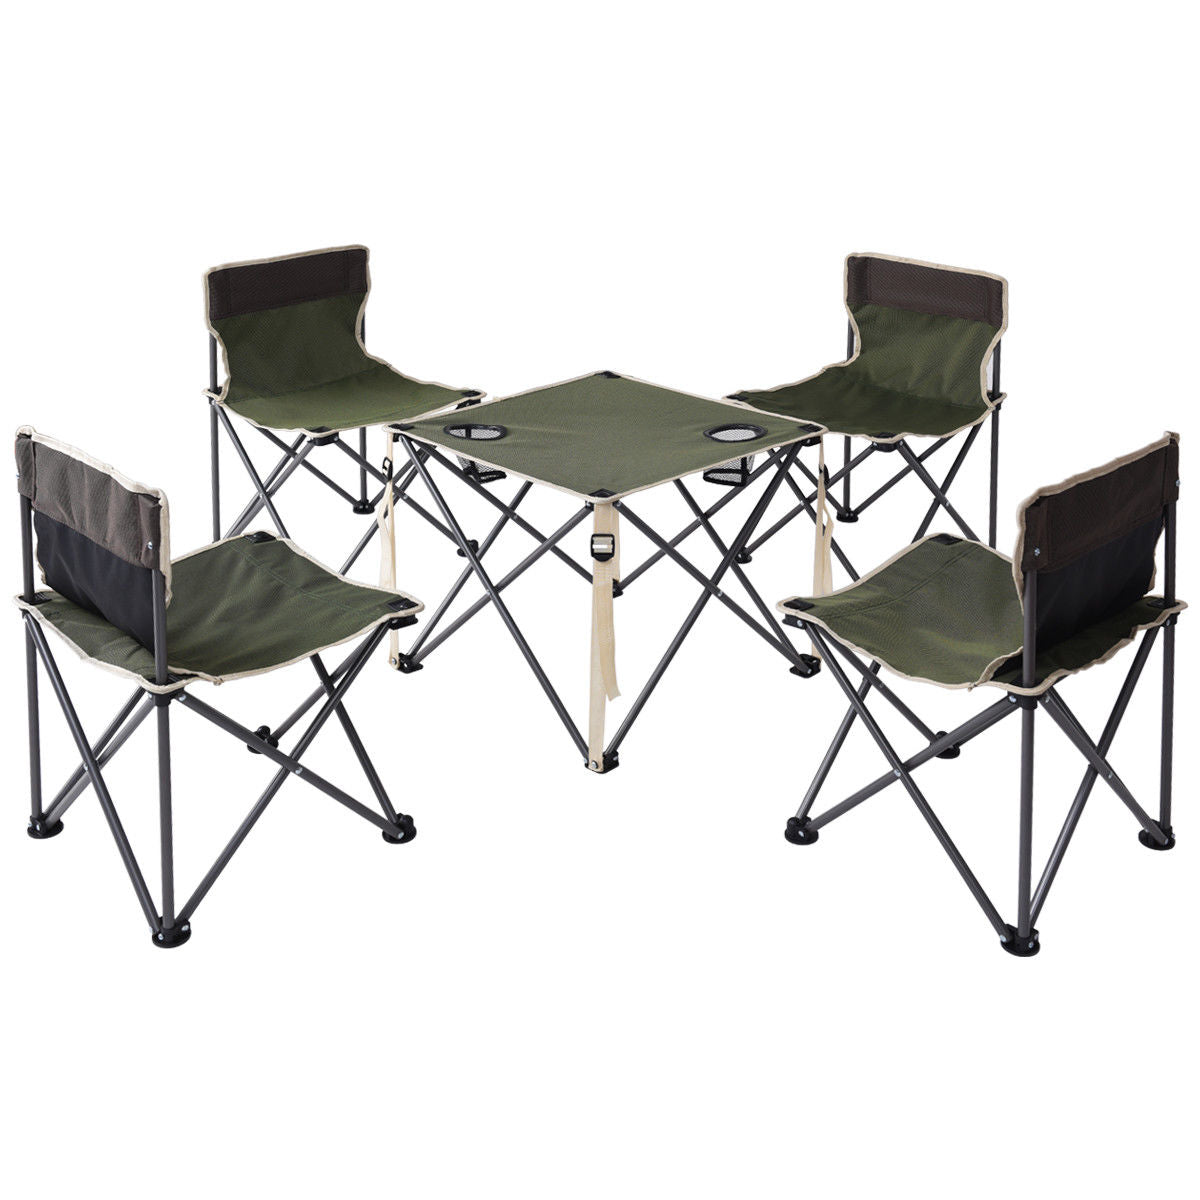 Green Portable Outdoor Folding Table Chairs Set Camping Beach Picnic Table  with Carrying Bag - Natural Elements By L / Green Portable Outdoor Folding Table Chairs